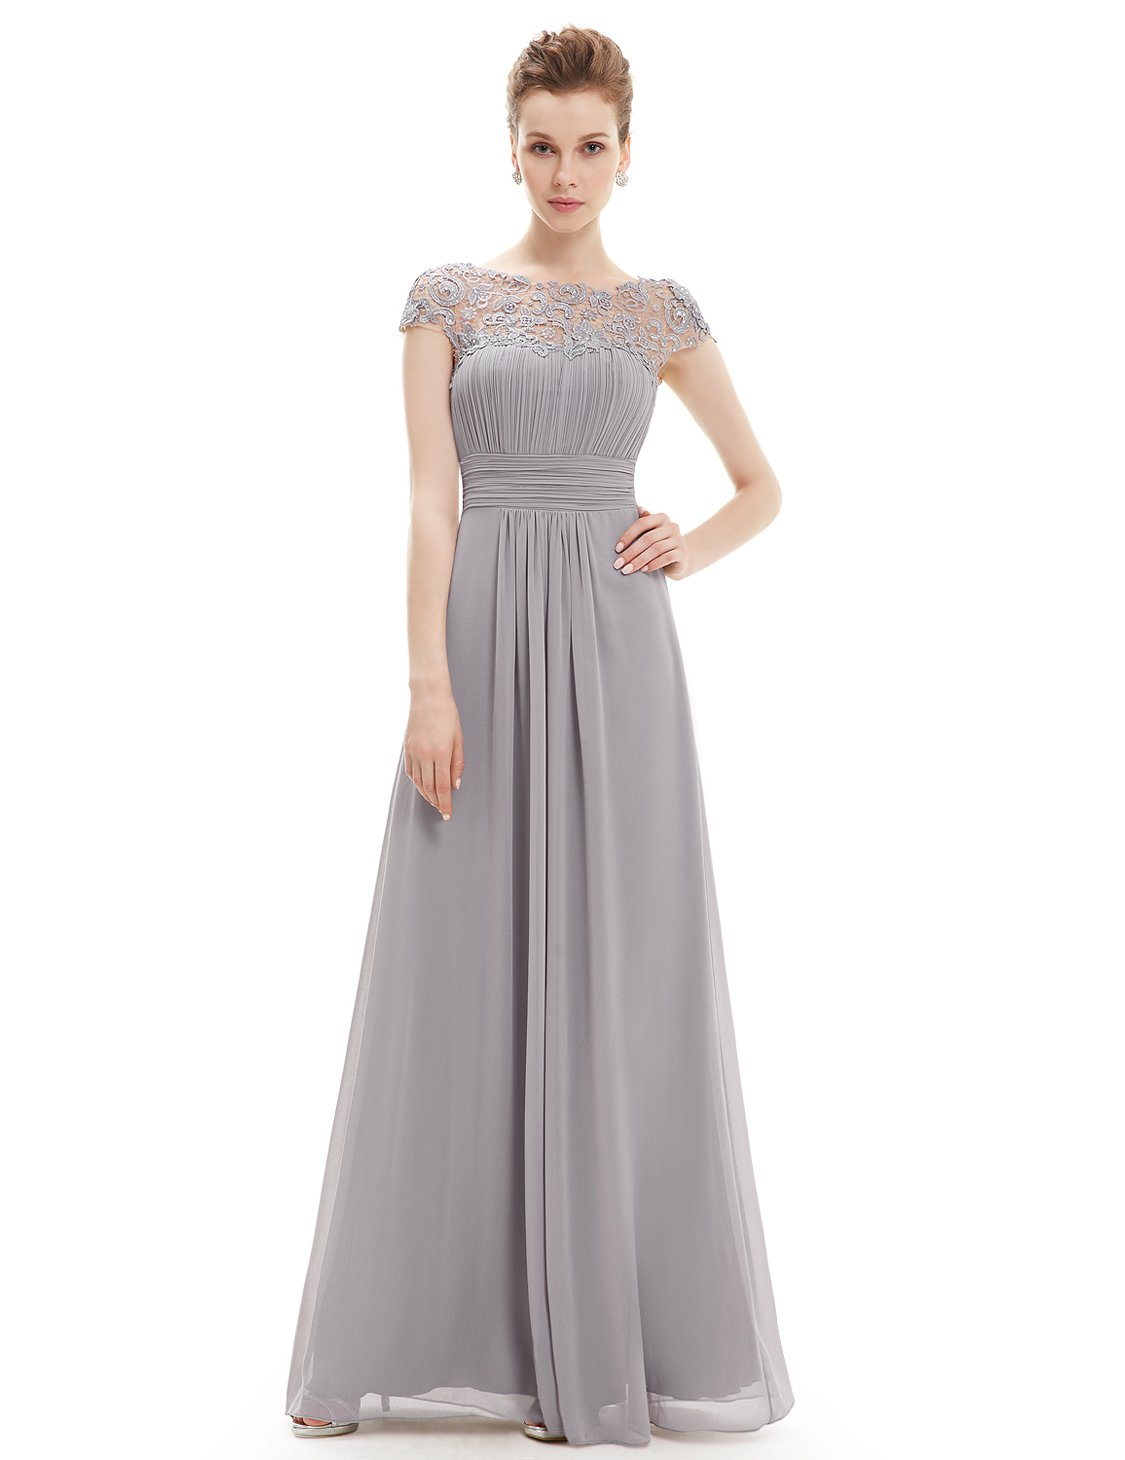 Ever-Pretty Womens Cap Sleeve Lace Neckline Ruched Bust Evening Gown 12 US Grey